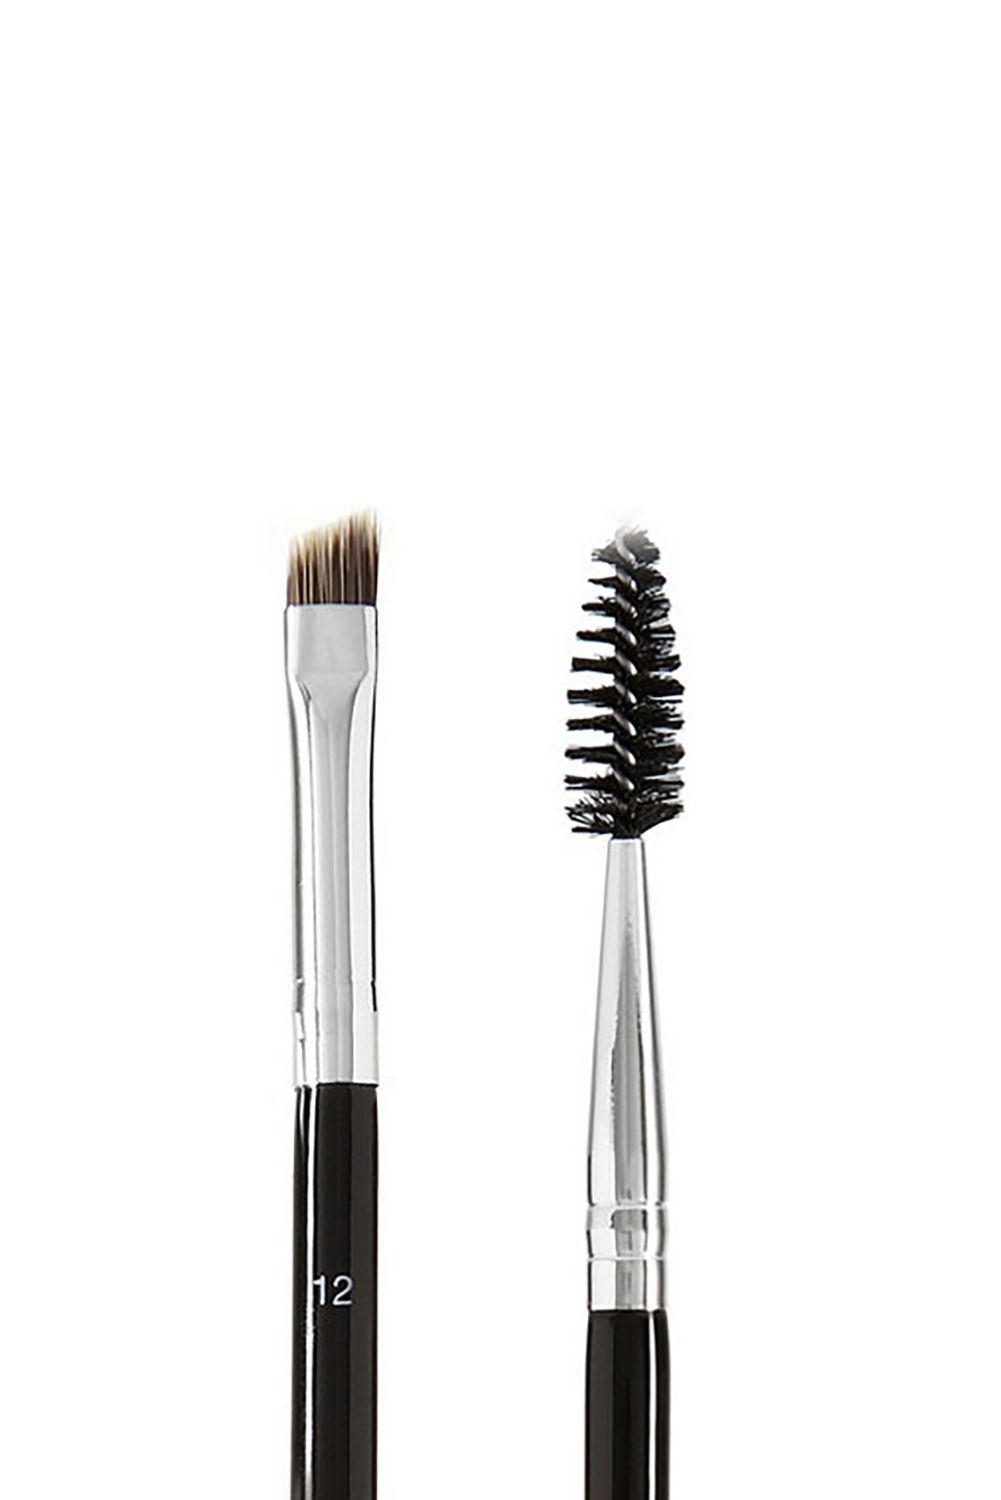 10 Best Makeup Brushes - Essential Tools for Your Makeup Bag